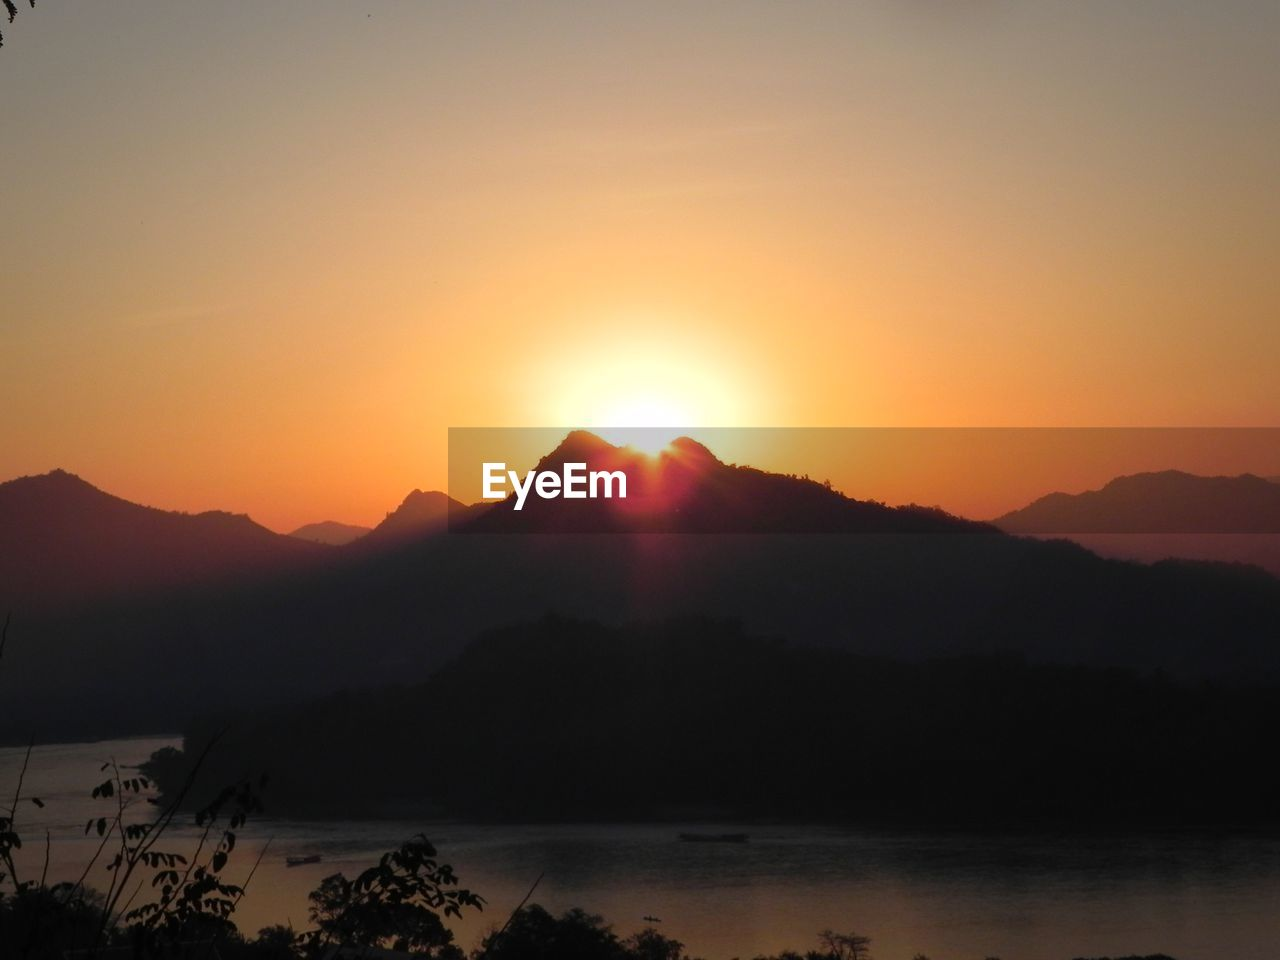 sky, sunset, beauty in nature, mountain, scenics - nature, tranquil scene, tranquility, sun, silhouette, orange color, idyllic, water, mountain range, non-urban scene, no people, nature, sunlight, environment, remote, lens flare, outdoors